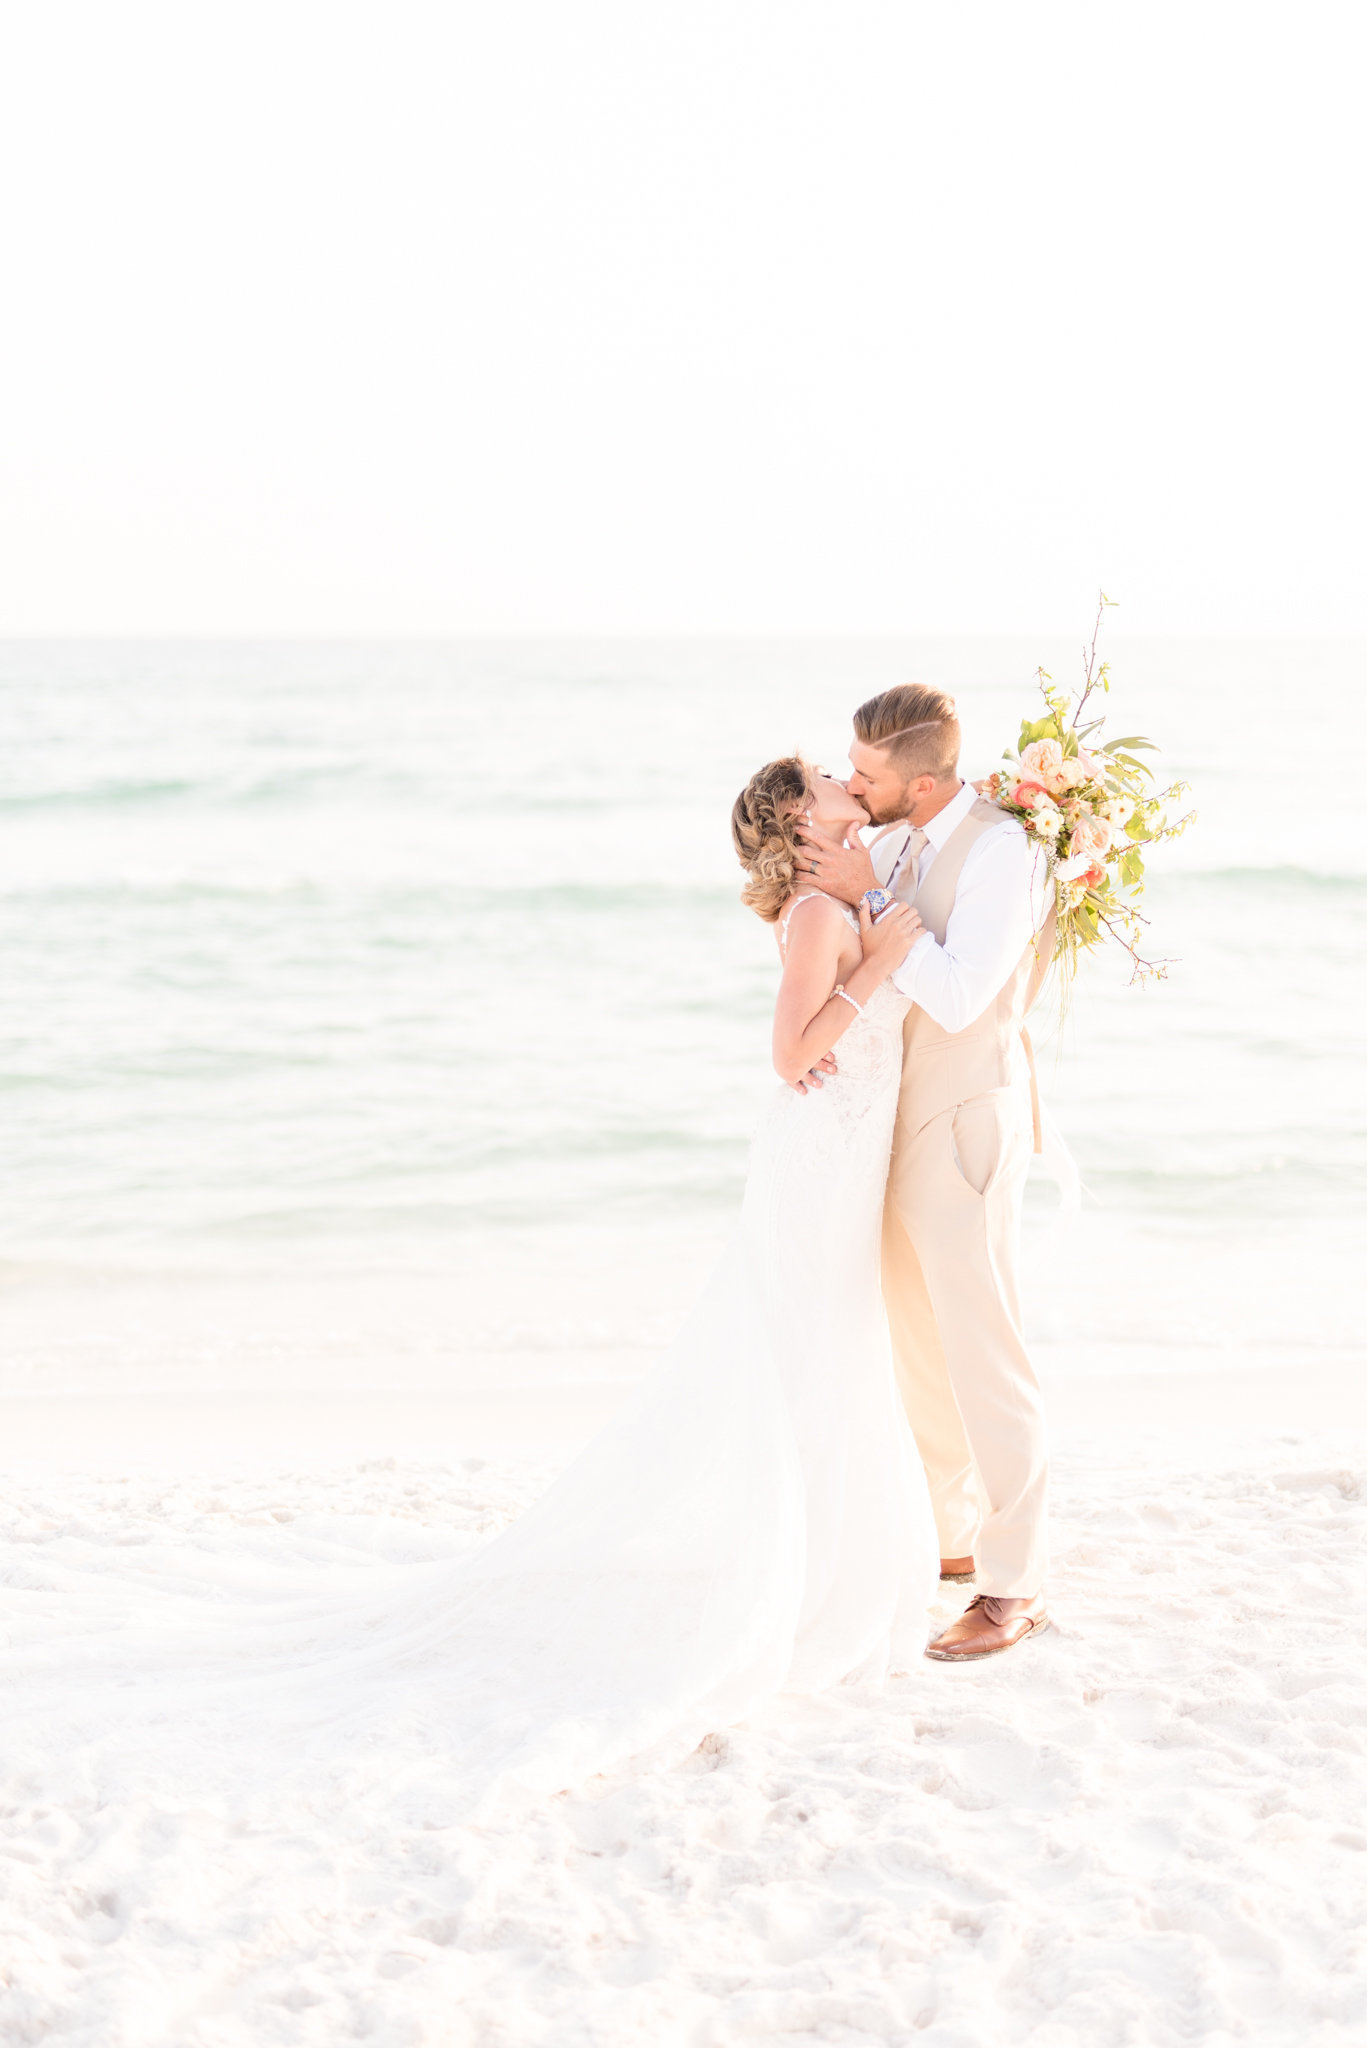 Bride and Groom kiss on beach during sunset.